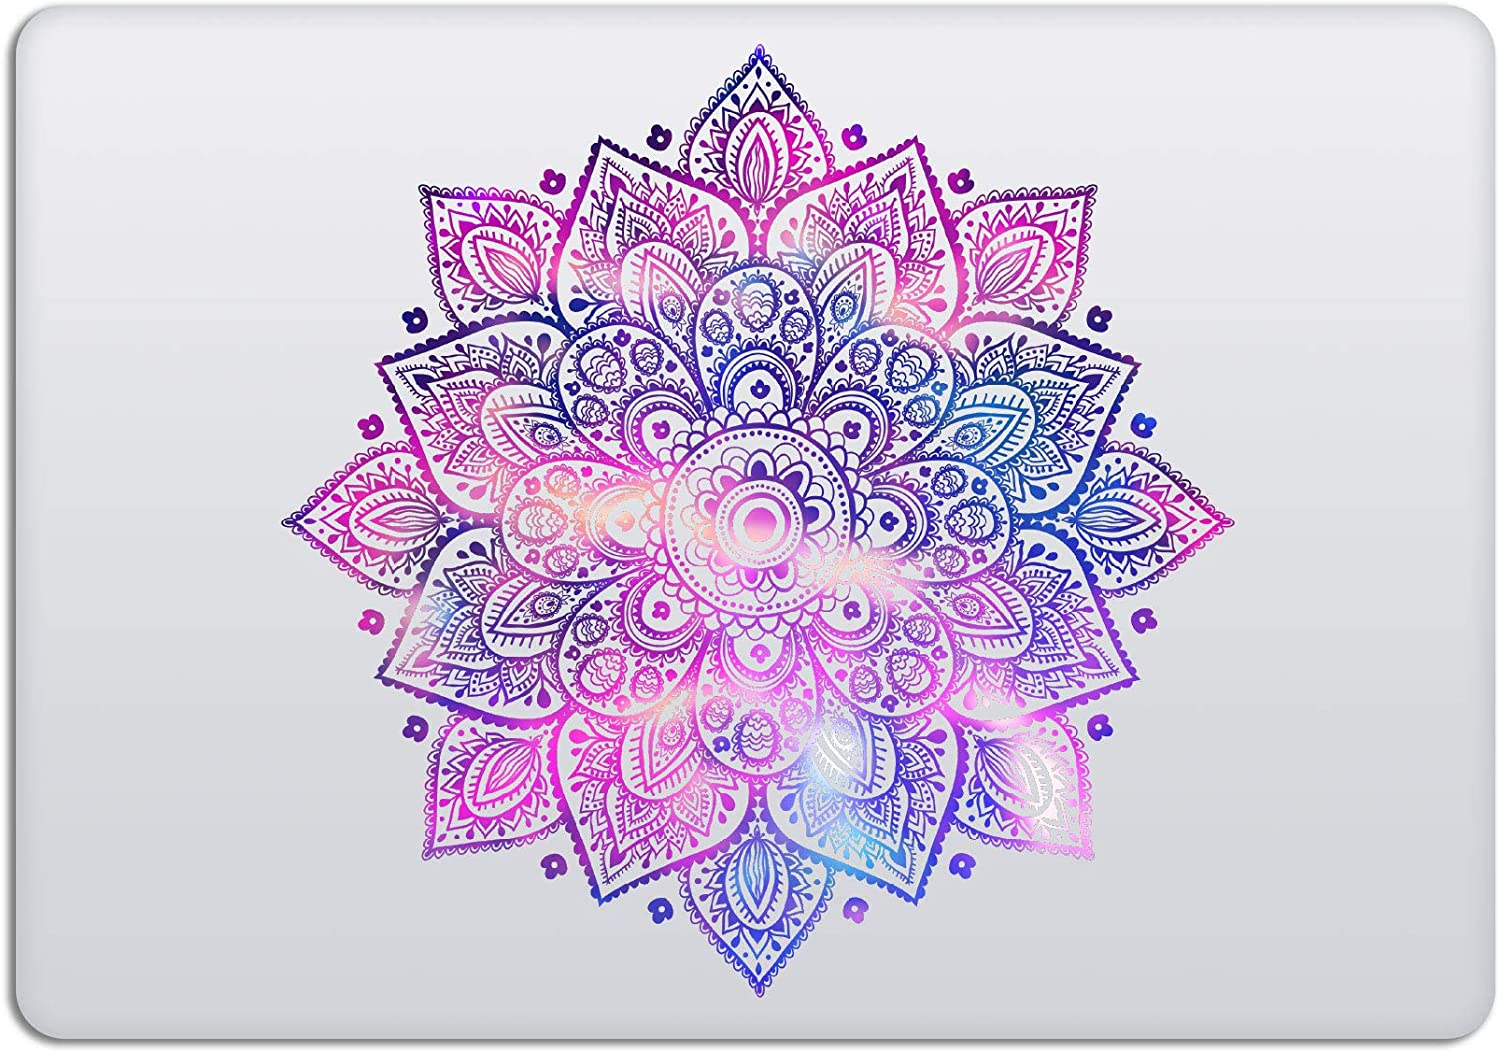 Laptop Stickers MacBook Decal - Removable Vinyl - Mandala Purple Blue Decal Skin for Apple MacBook Air Pro 13 15 inch Mac Retina - Best Decorative Sticker by Artsybb